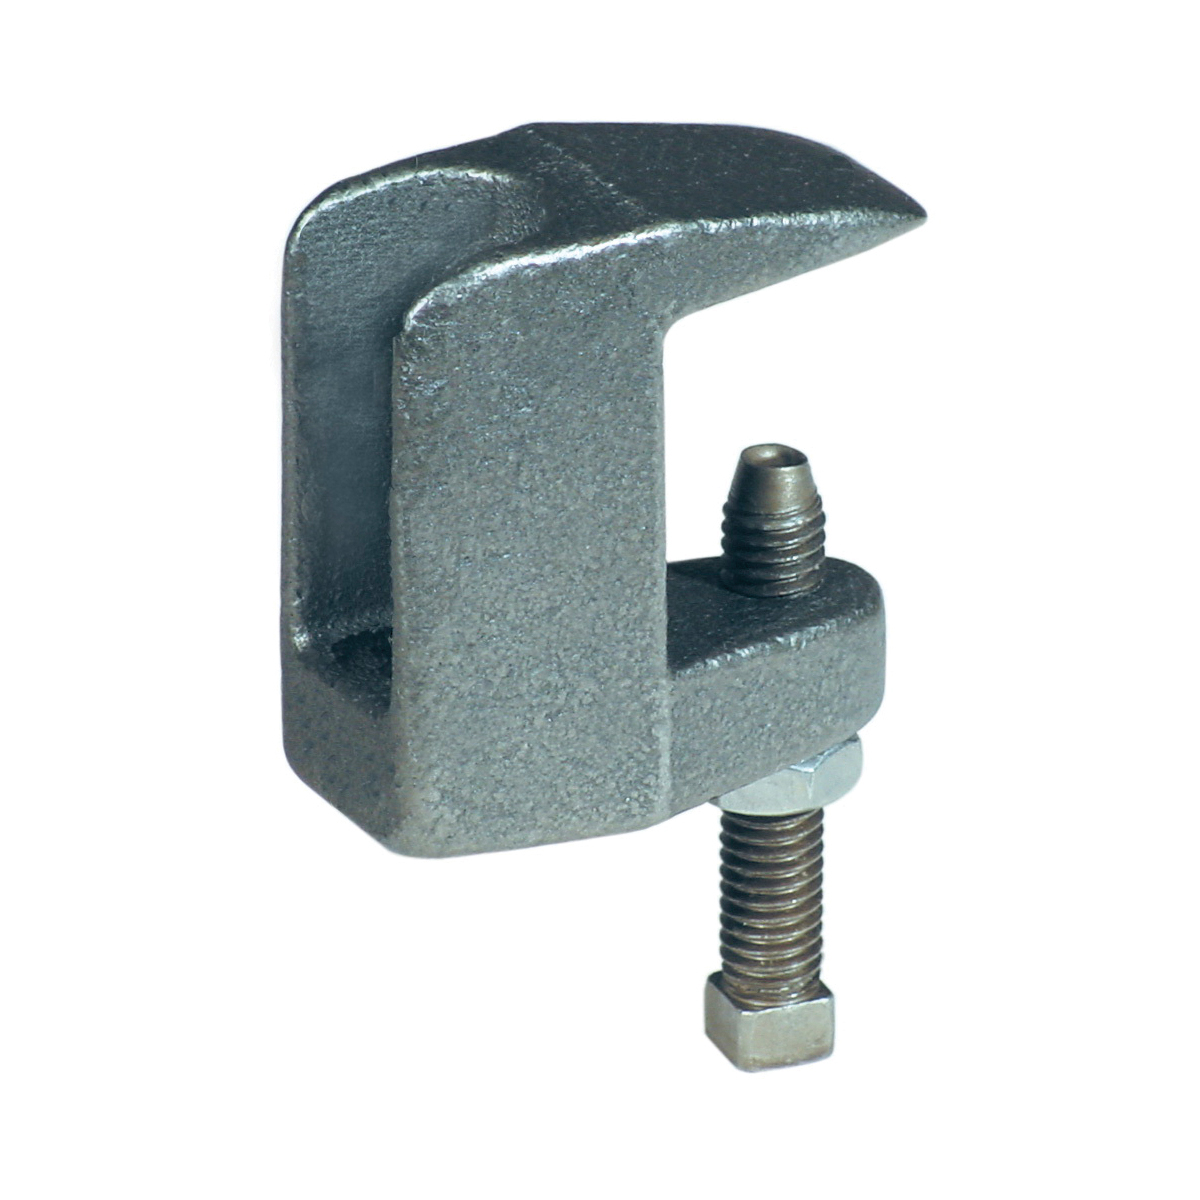 Anvil® 0500009246 FIG 94 Wide Throat Top Beam C-Clamp With Lock Nut, 3/4 in Rod, 1600 lb, Ductile Iron, Black